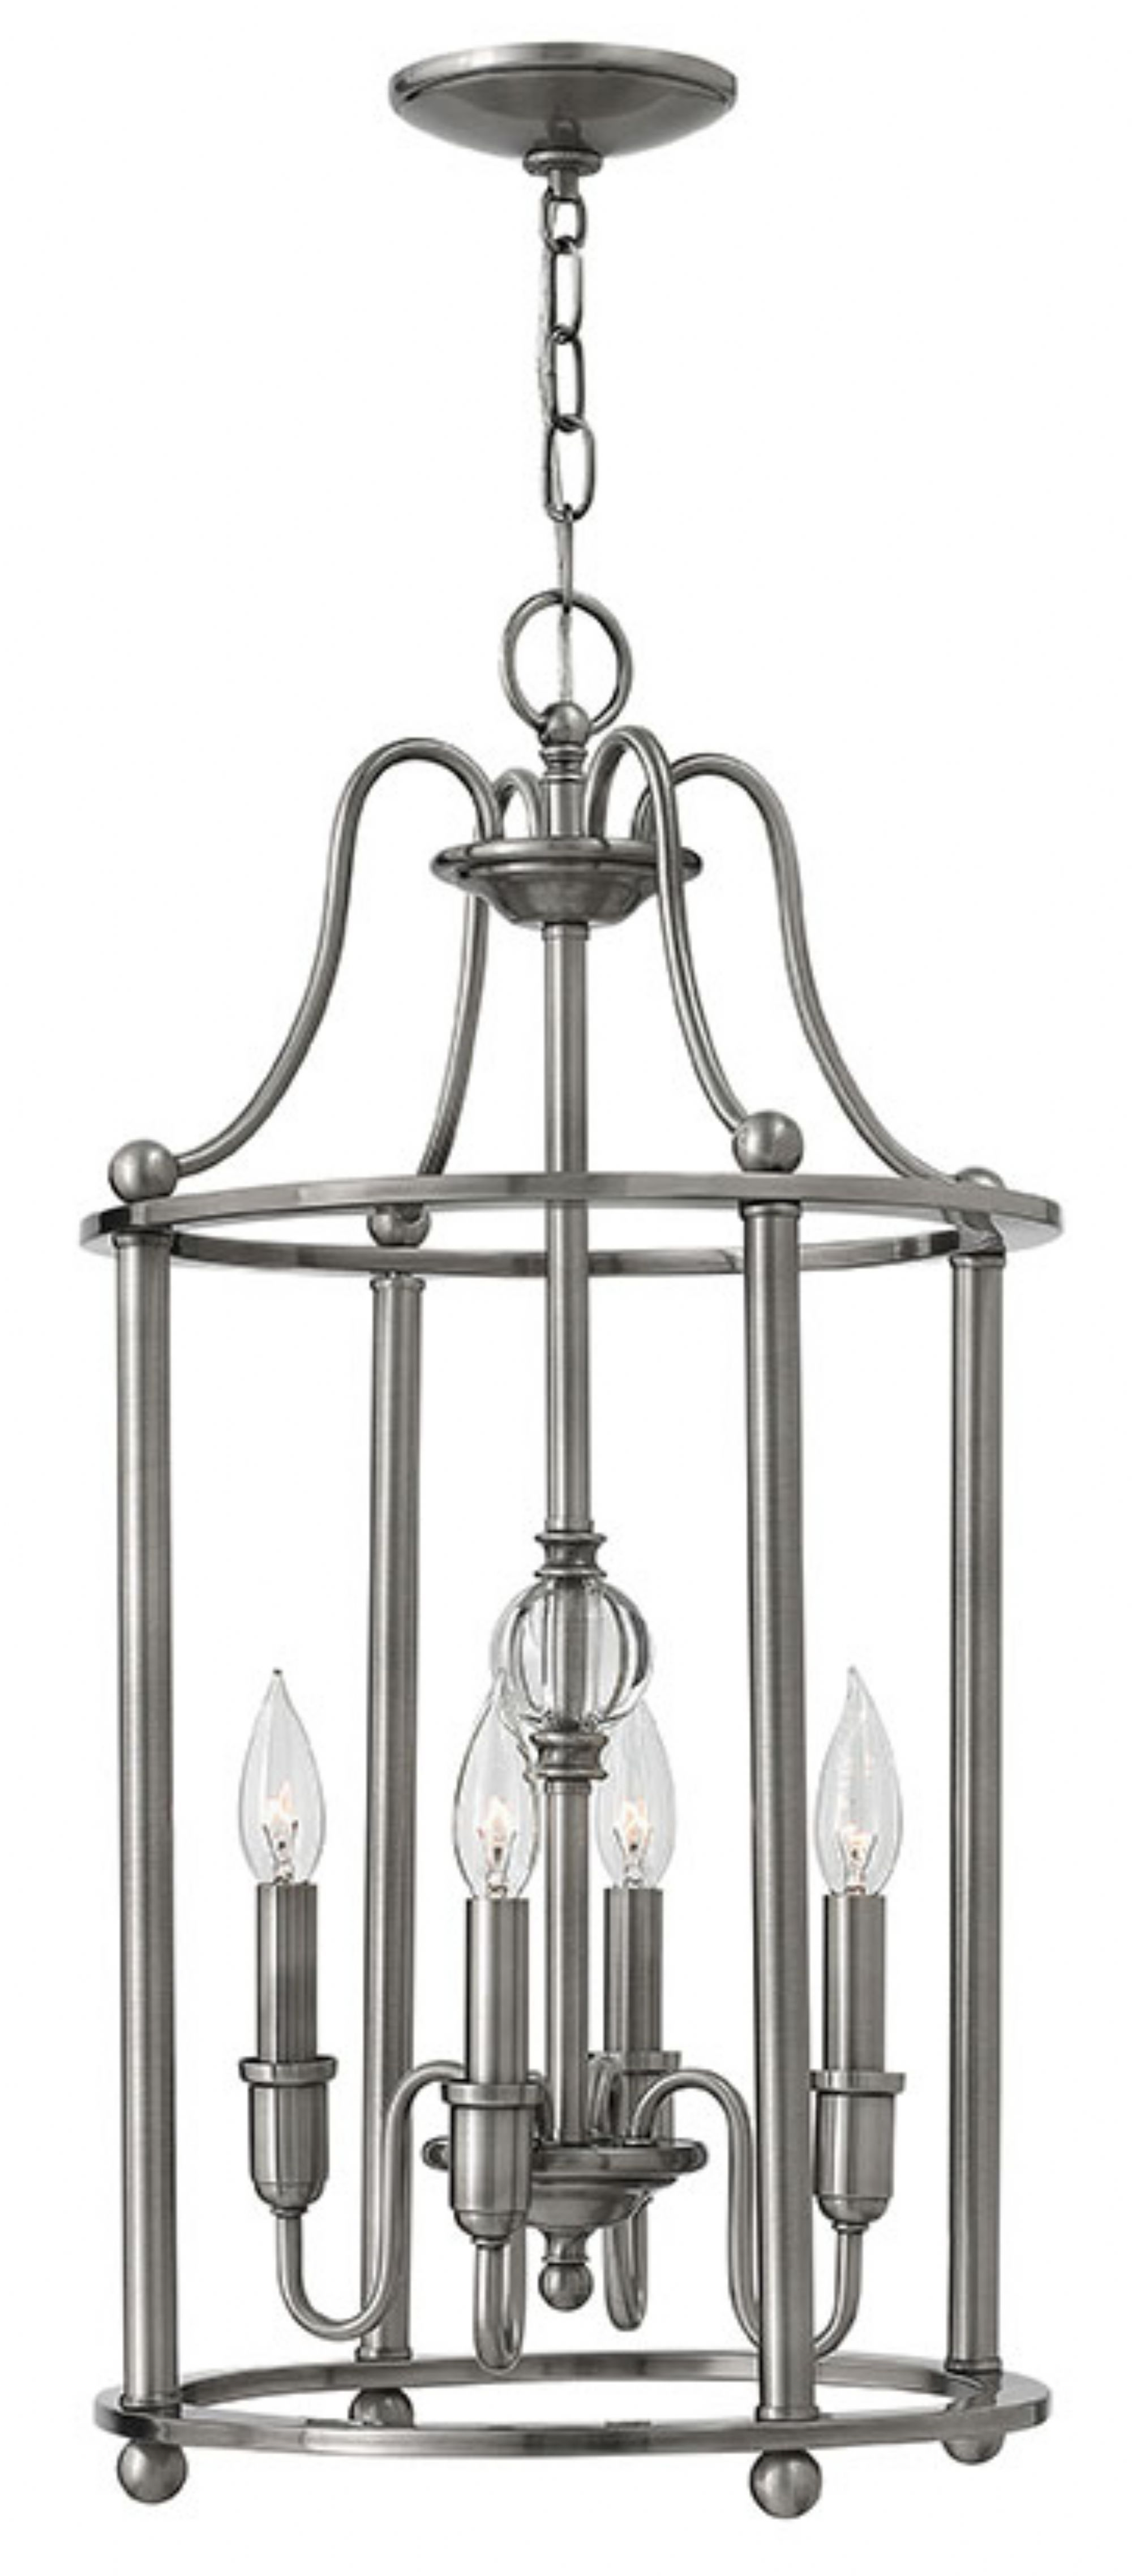 Polished Antique Nickel Elaine Chandeliers